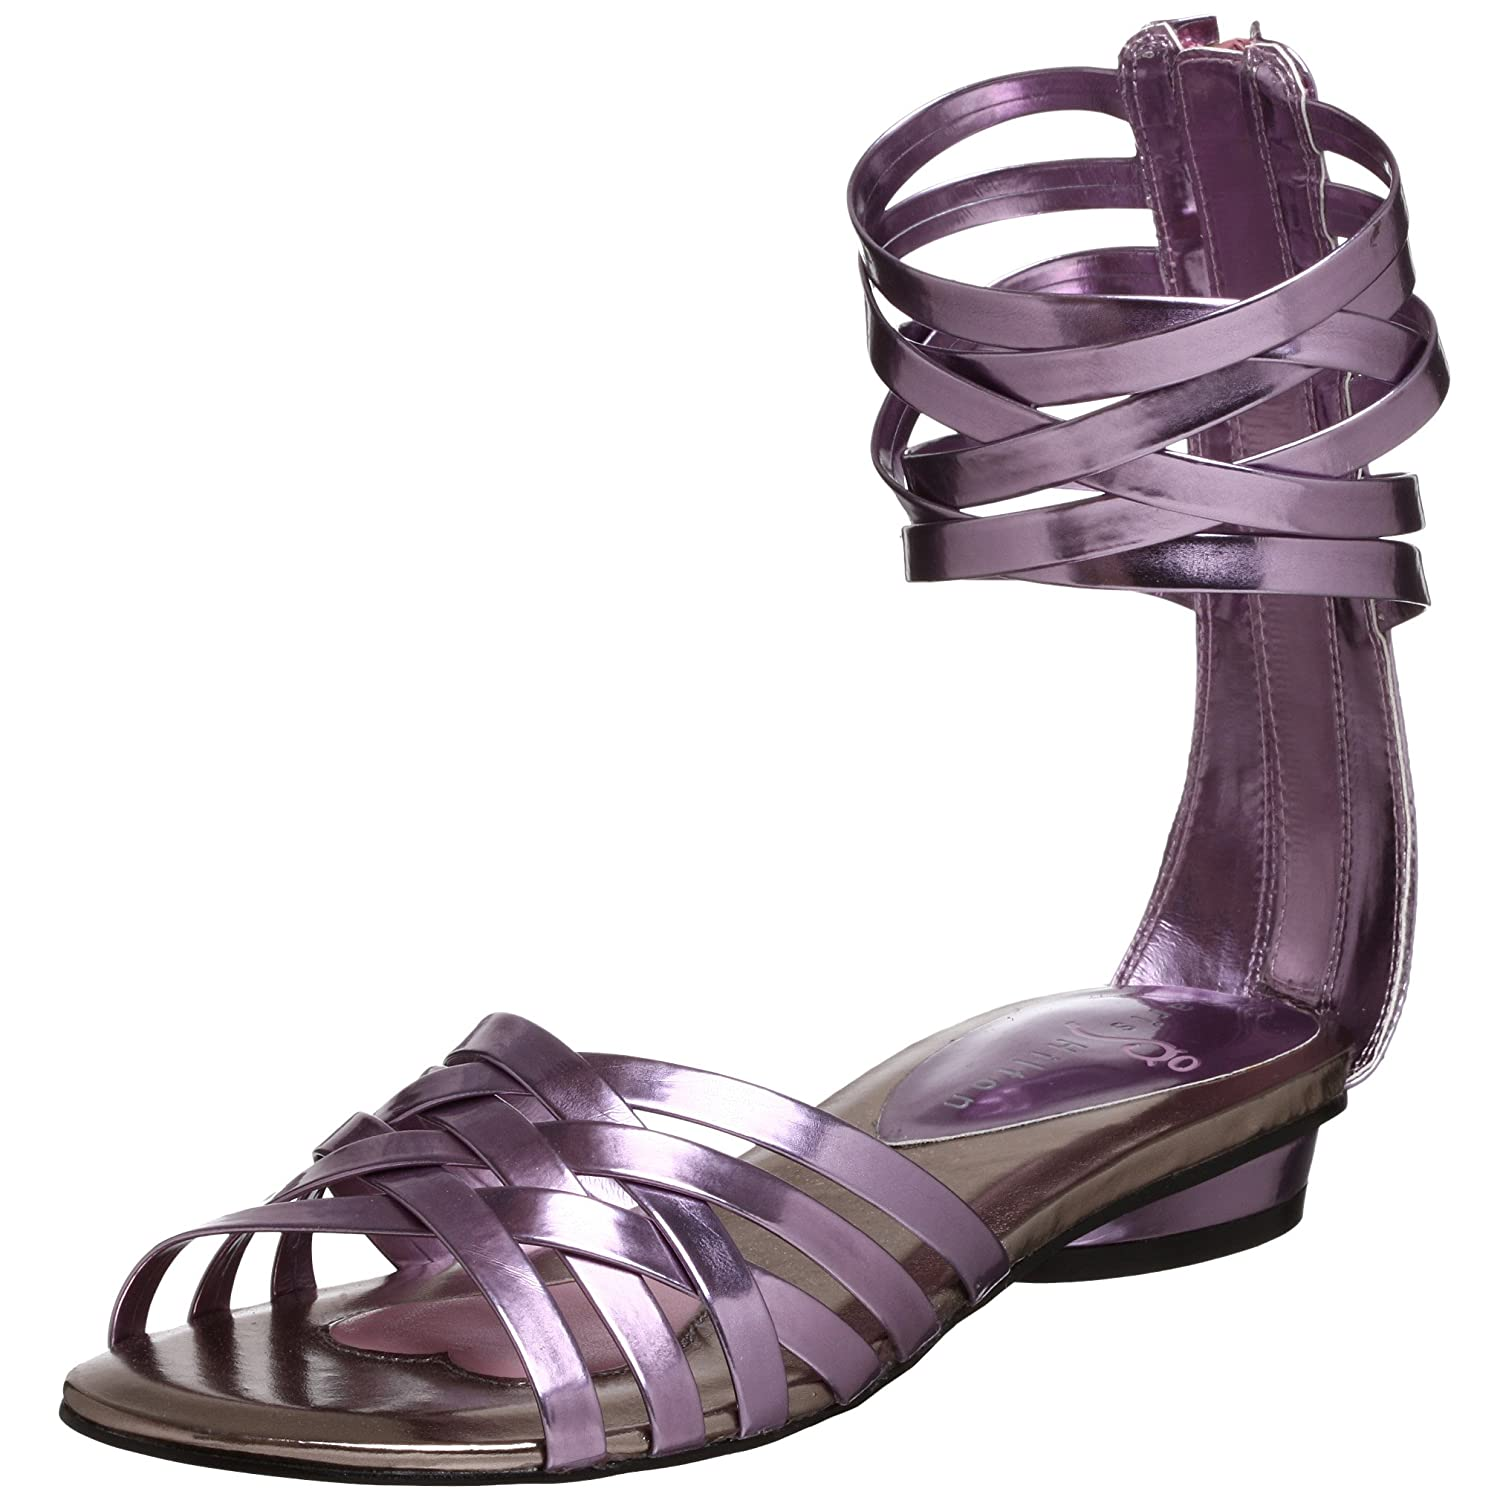 Endless.com: Paris Hilton Women's Goddess Gladiator Sandal: Categories - Free Overnight Shipping & Return Shipping from endless.com